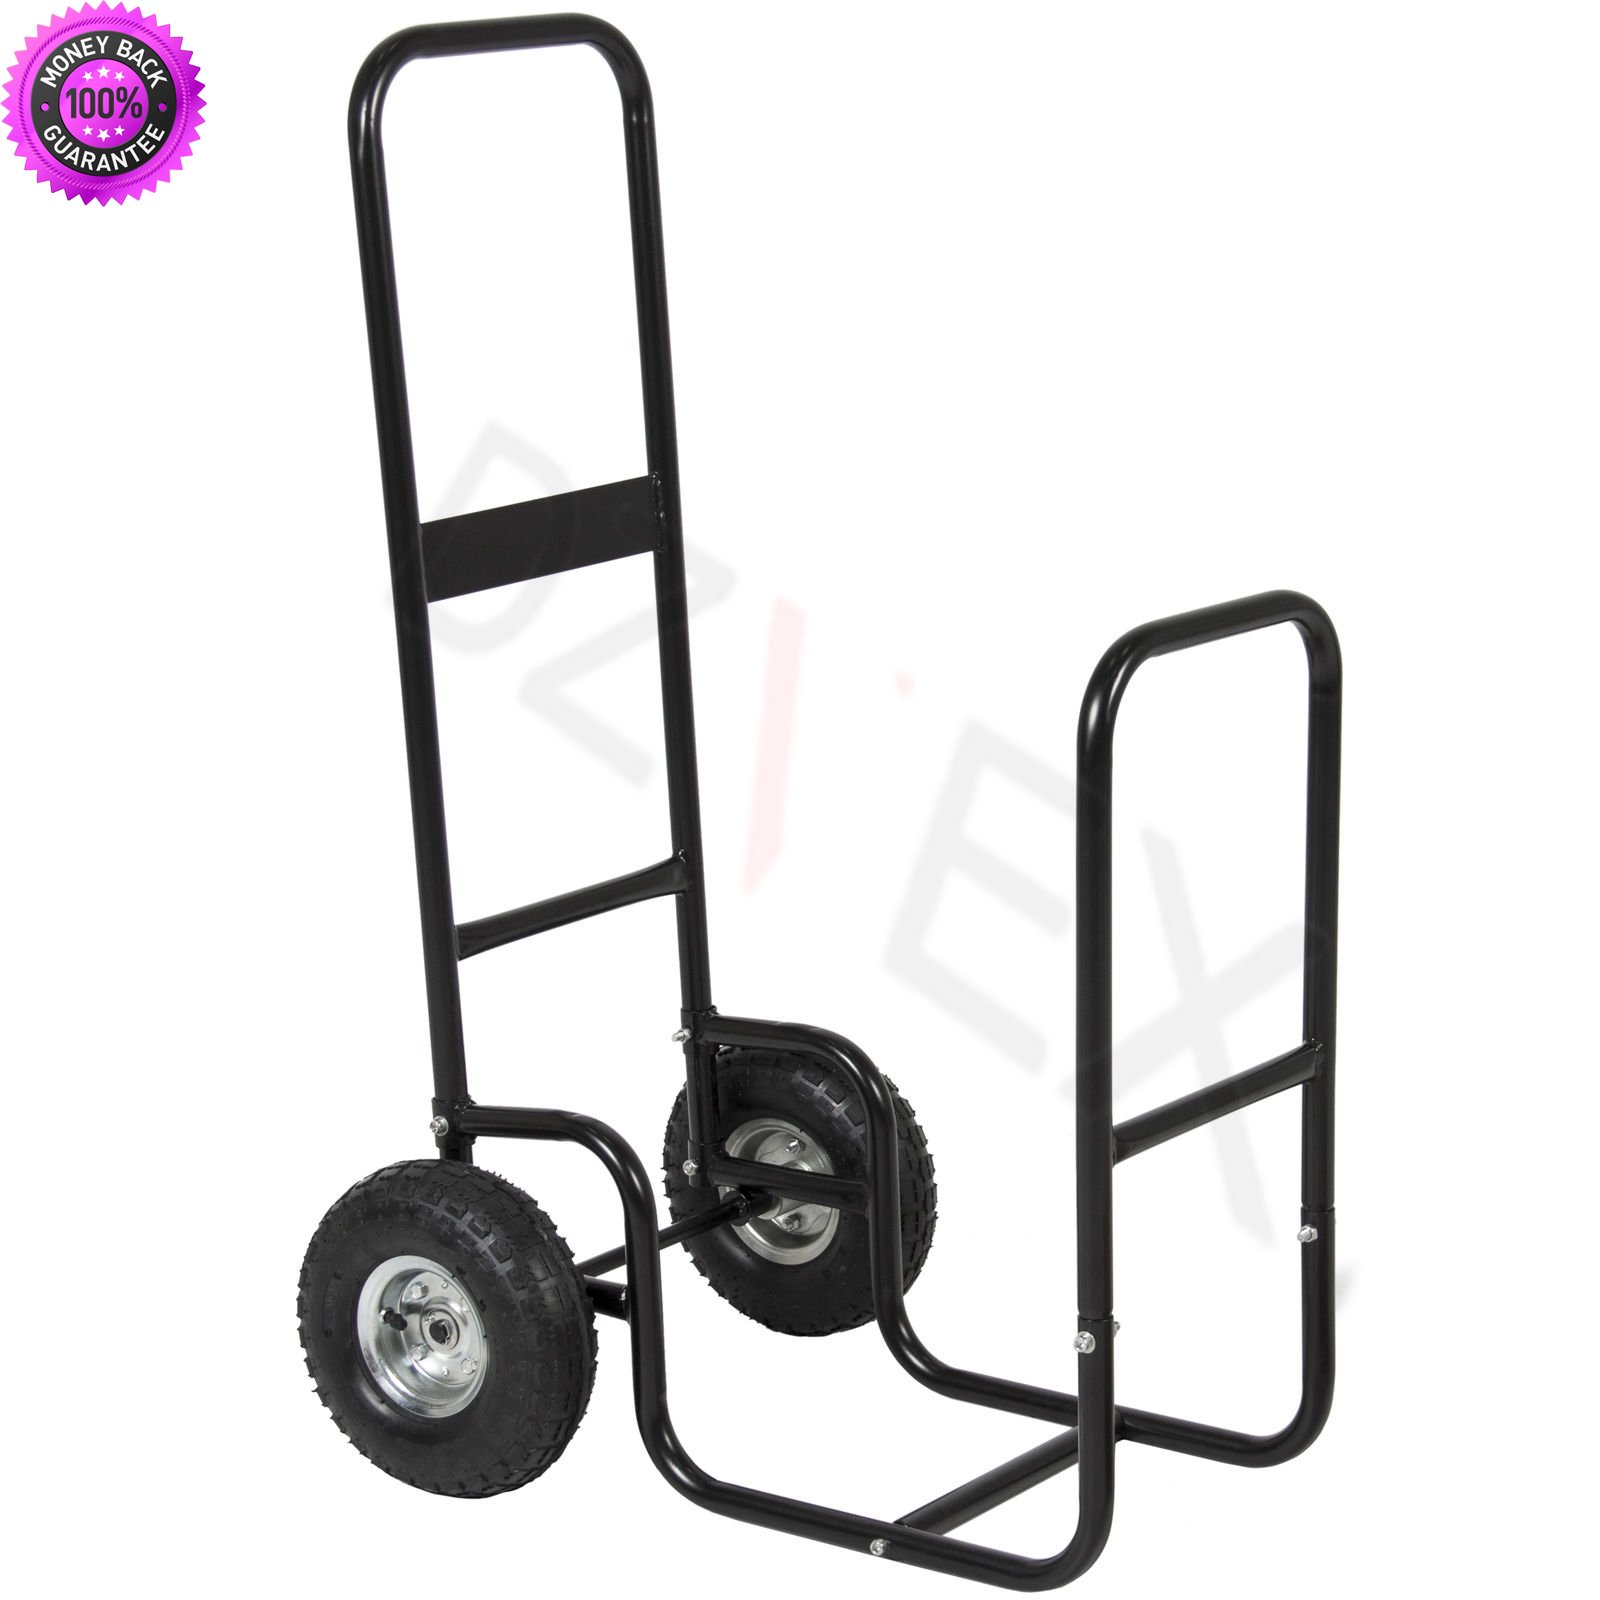 DzVeX Firewood Cart Log Carrier Fireplace Wood Hauler Rack Caddy Rolling Dolly And The steel construction and 10 inch wheels make it sturdy and easy to pull Light weight body makes it easy to store